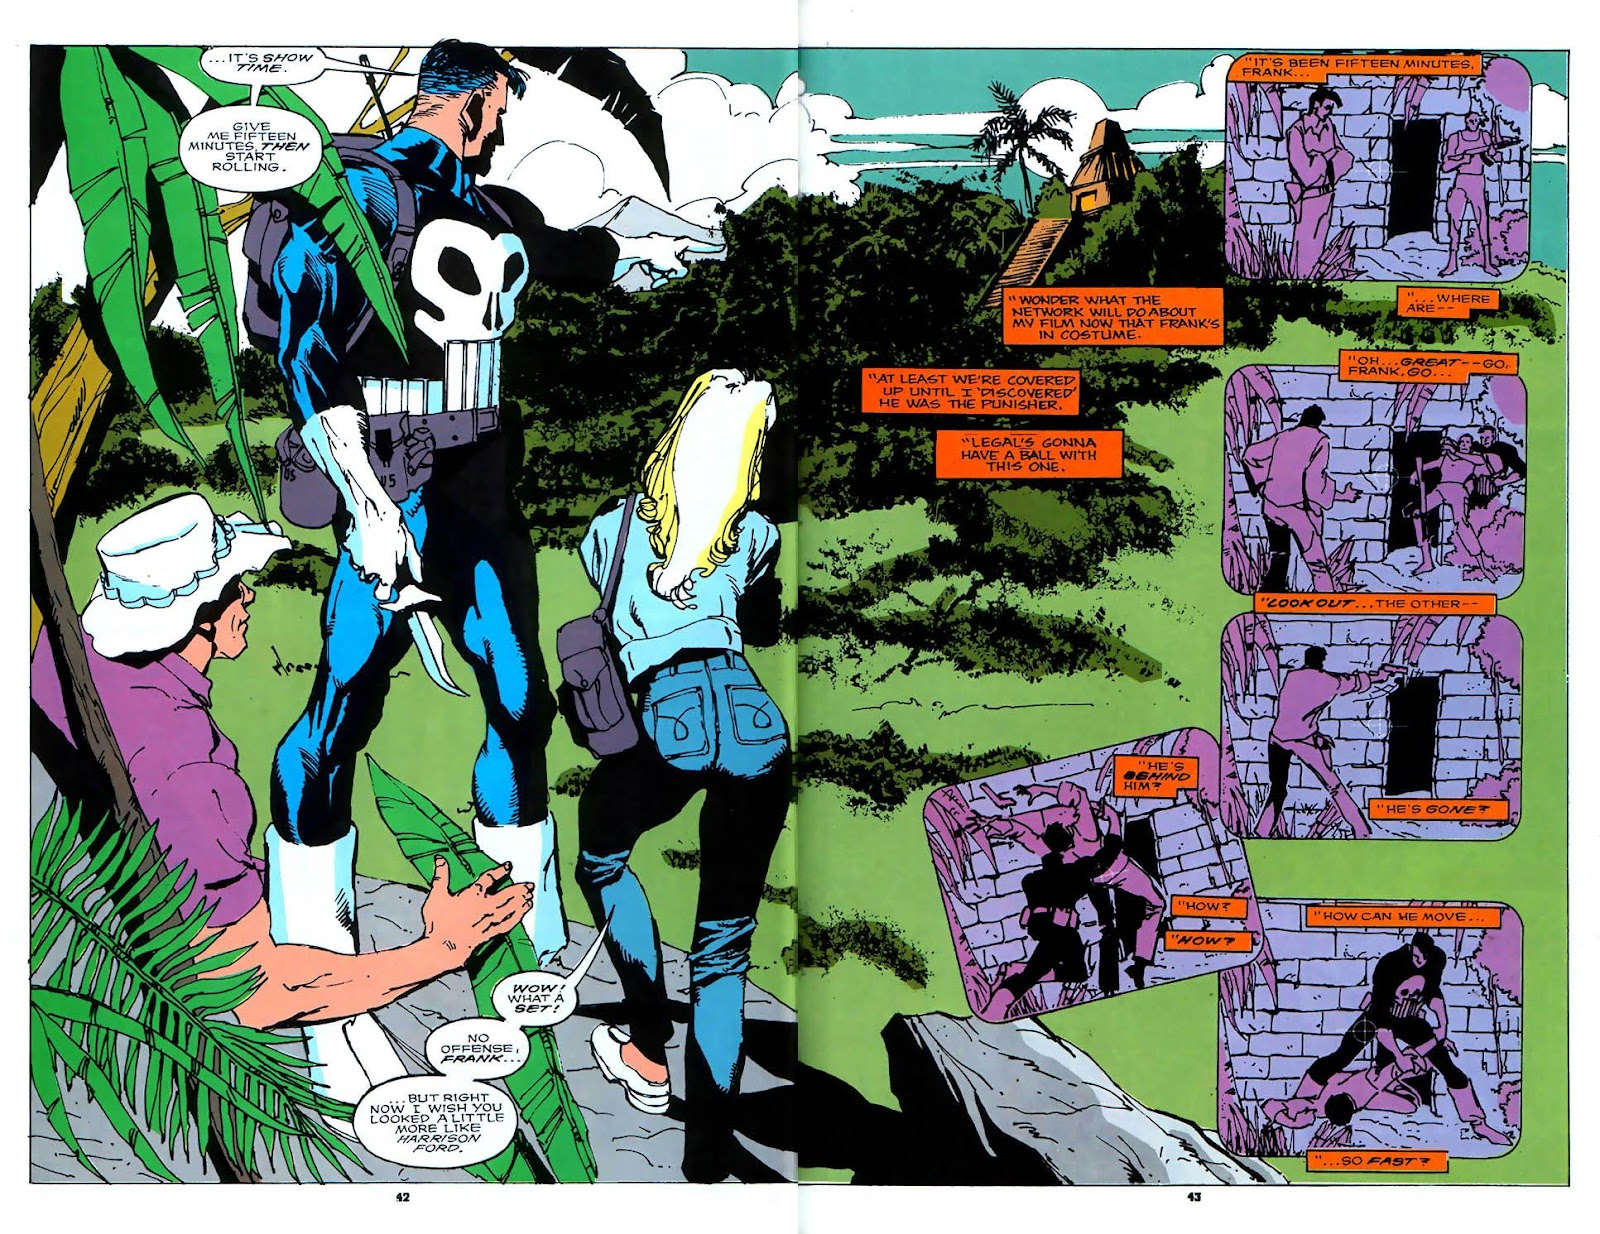 Read online Punisher: The Prize comic -  Issue # Full - 46